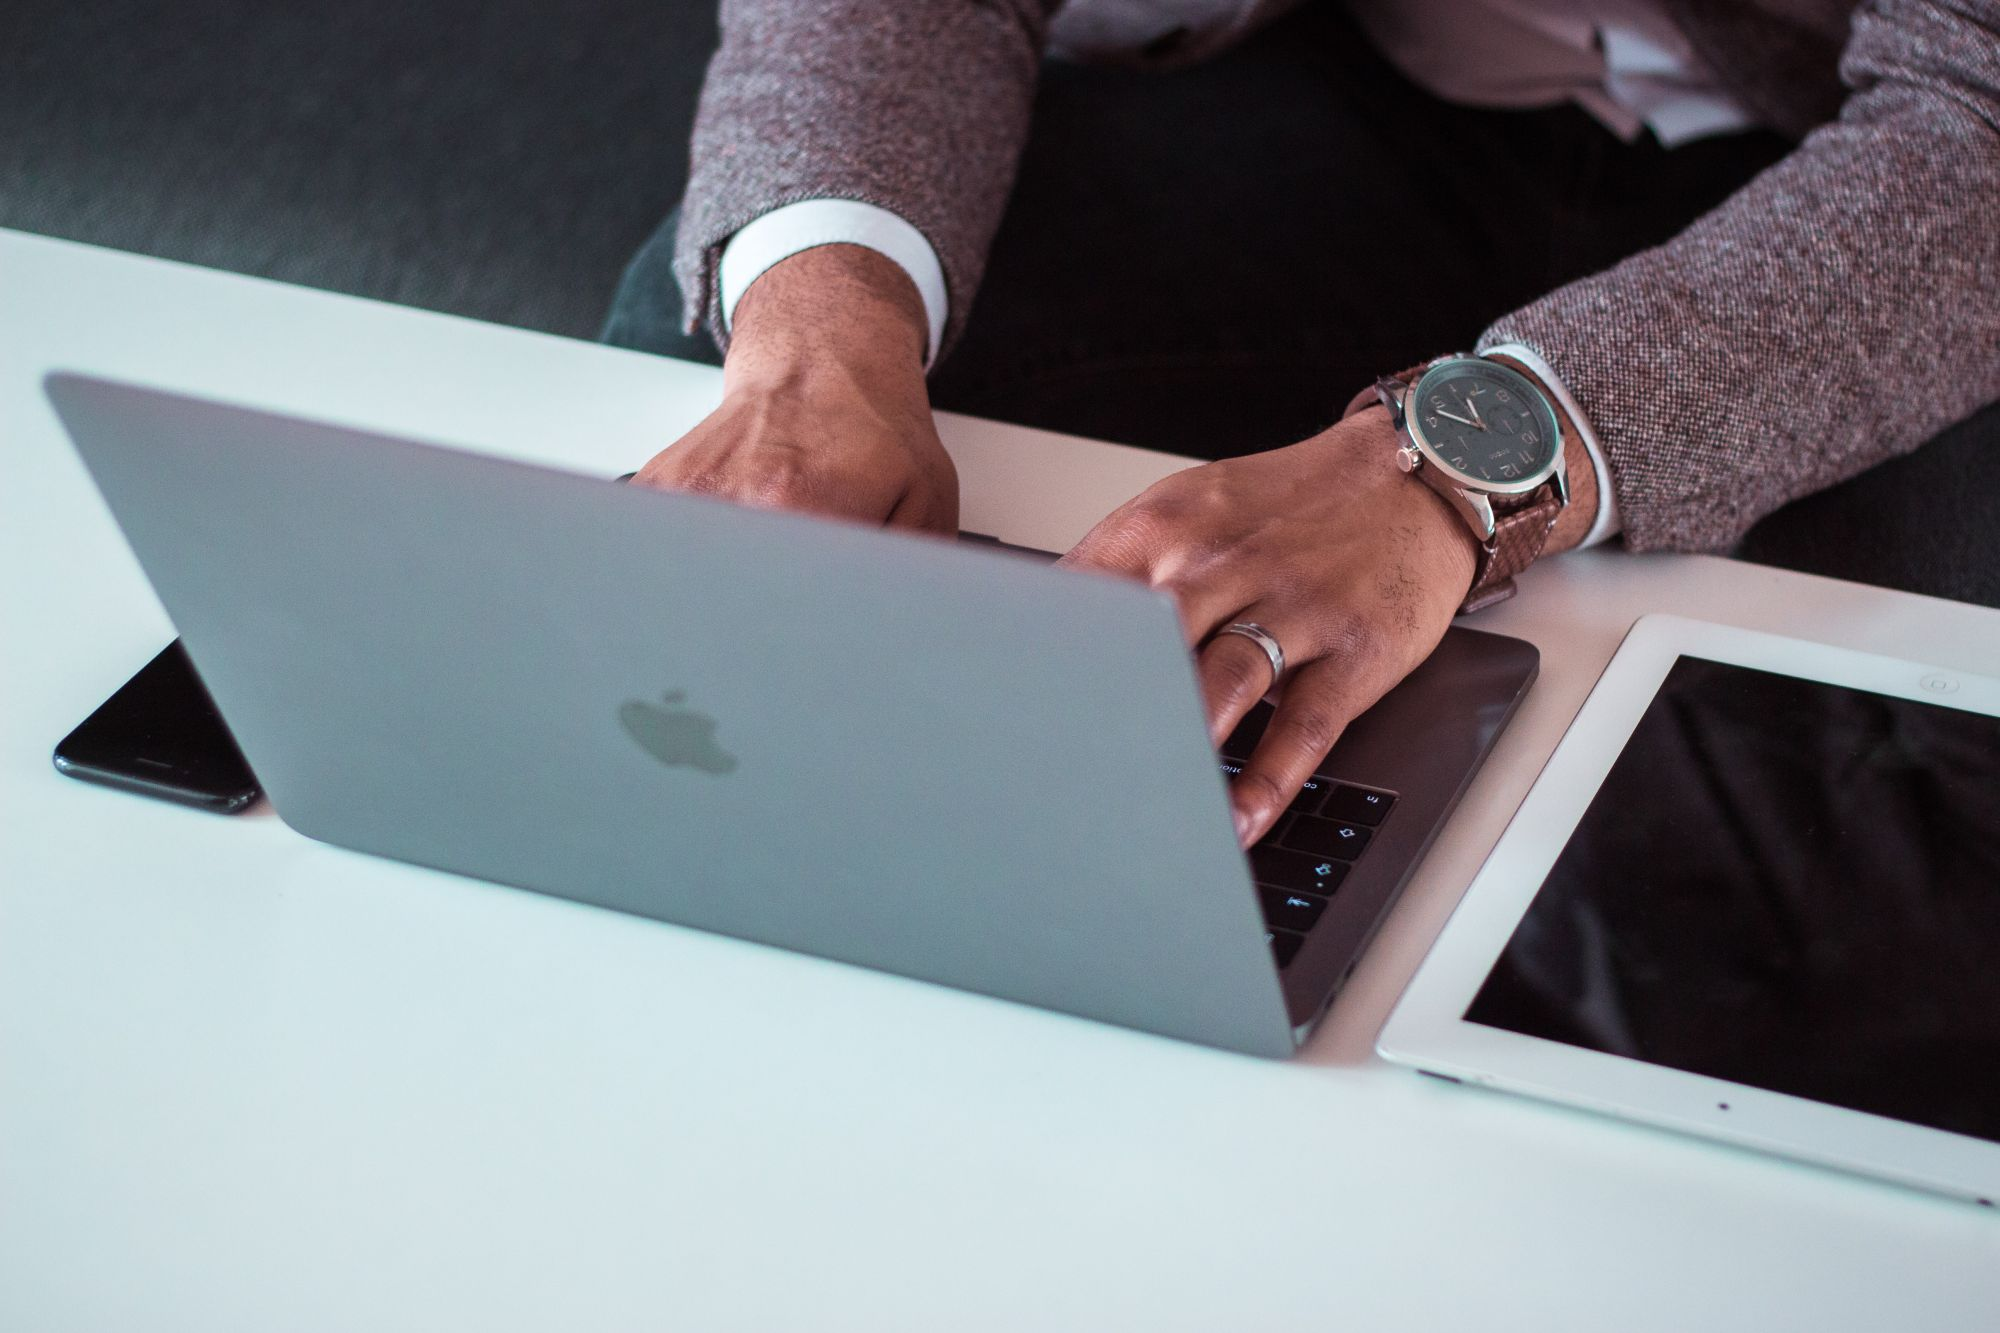 Work From Home Tips: 7 Productivity Mistakes to Avoid